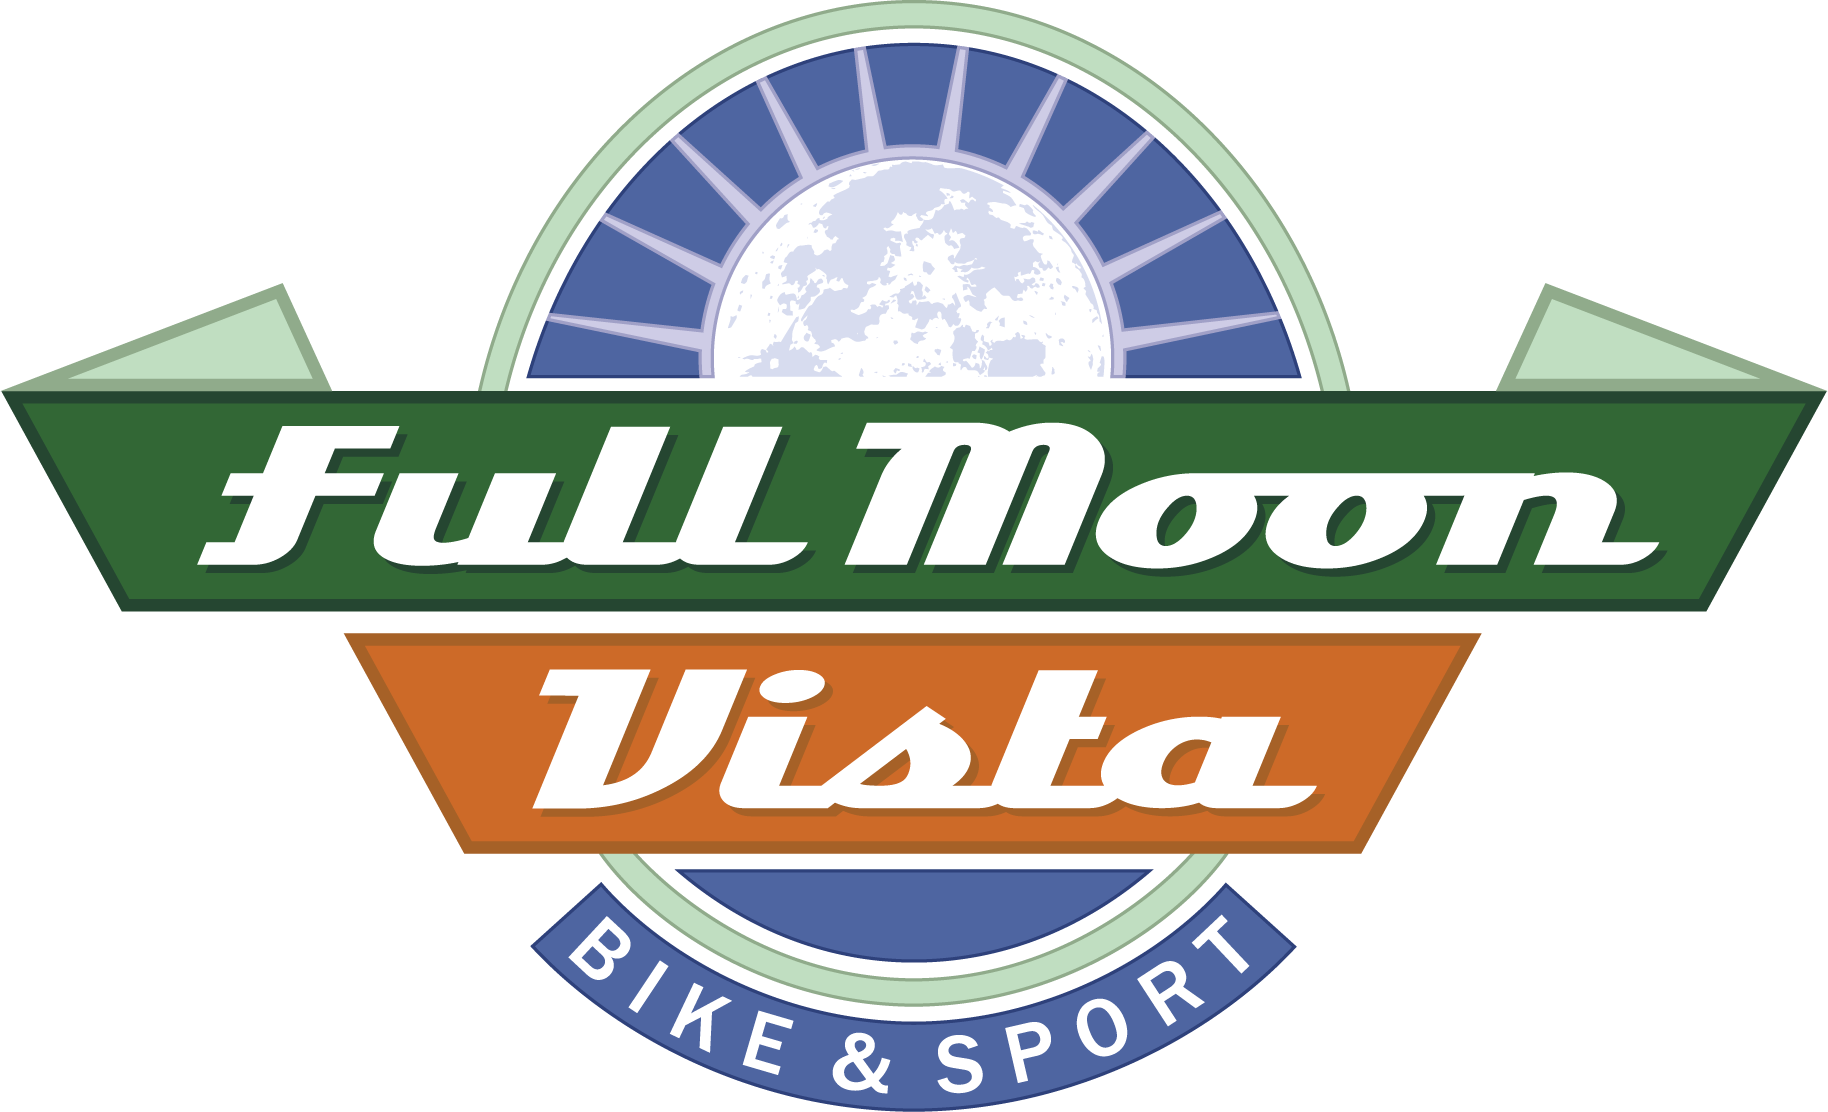 Full Moon Vista Bike & Sport - Official ROOTZ partner